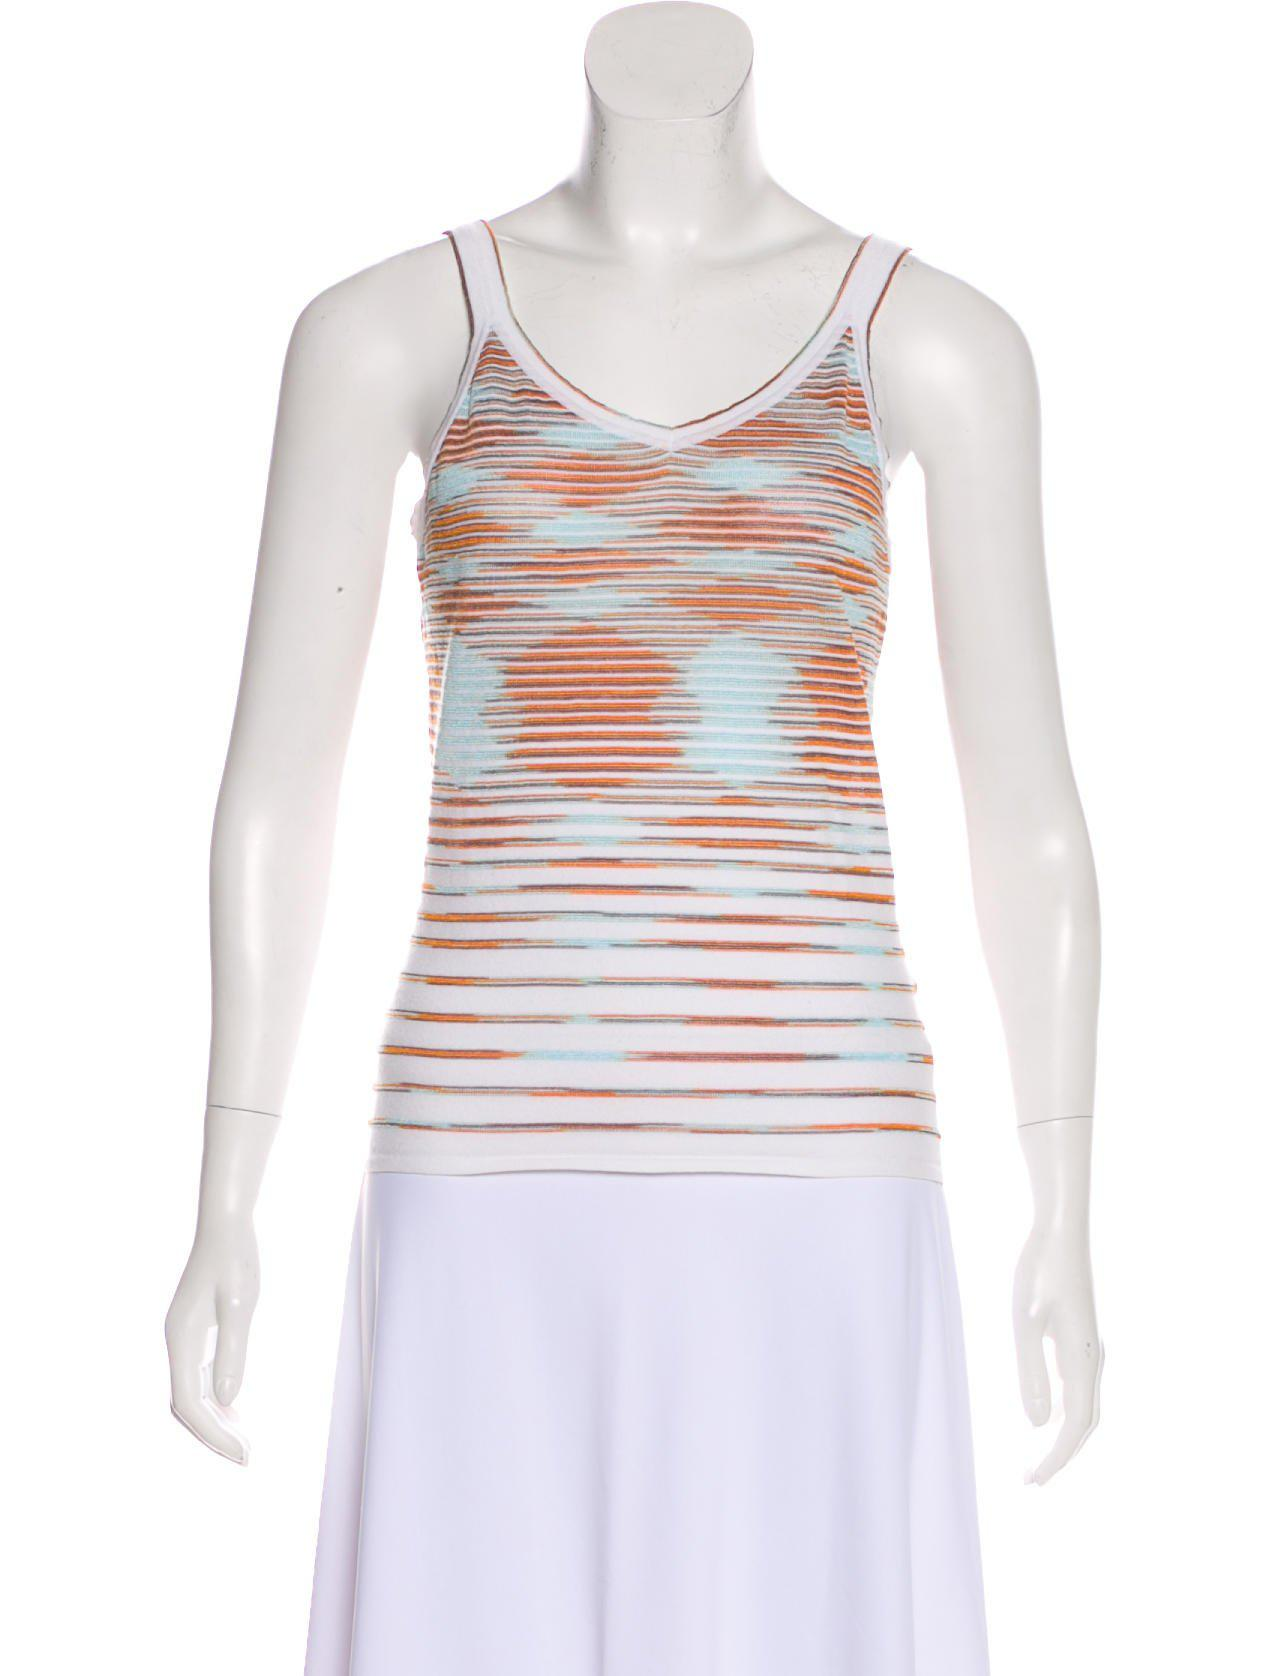 77573ace4 M Missoni. Women's Knit Striped Sleeveless Top Multicolor